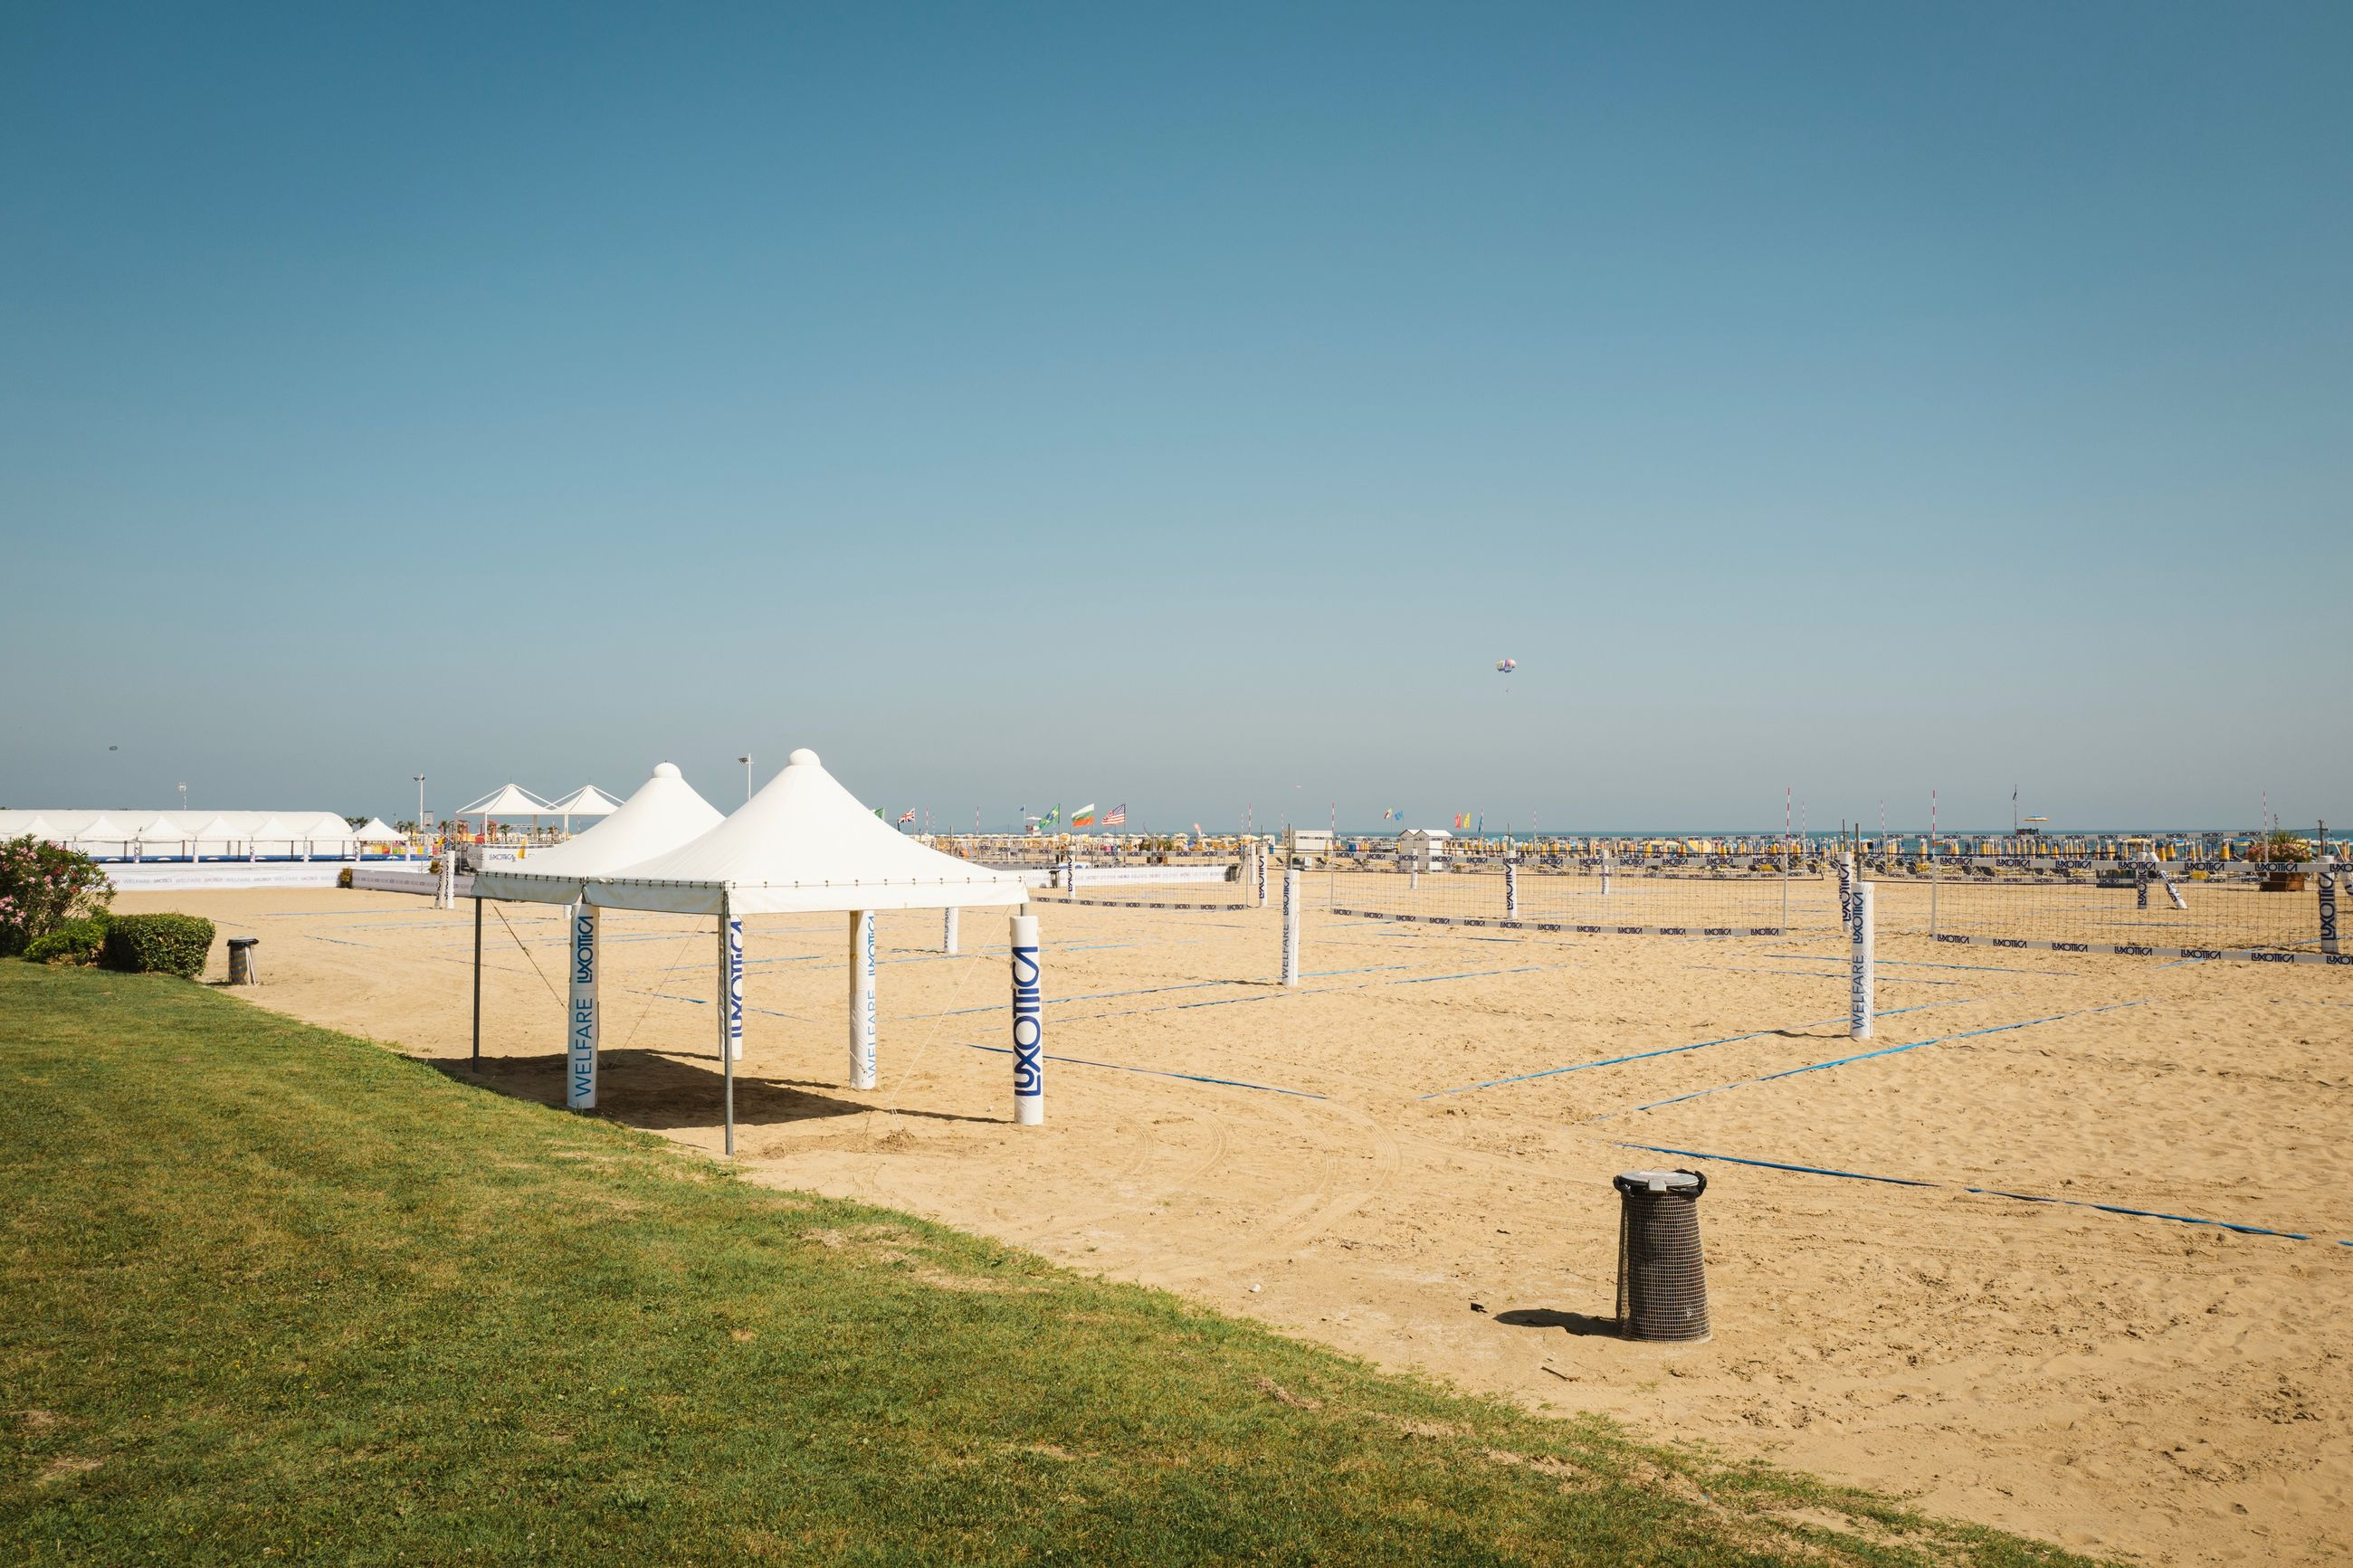 sky, land, clear sky, nature, copy space, day, beach, sunlight, blue, grass, sport, scenics - nature, architecture, environment, incidental people, tranquil scene, tranquility, landscape, sand, outdoors